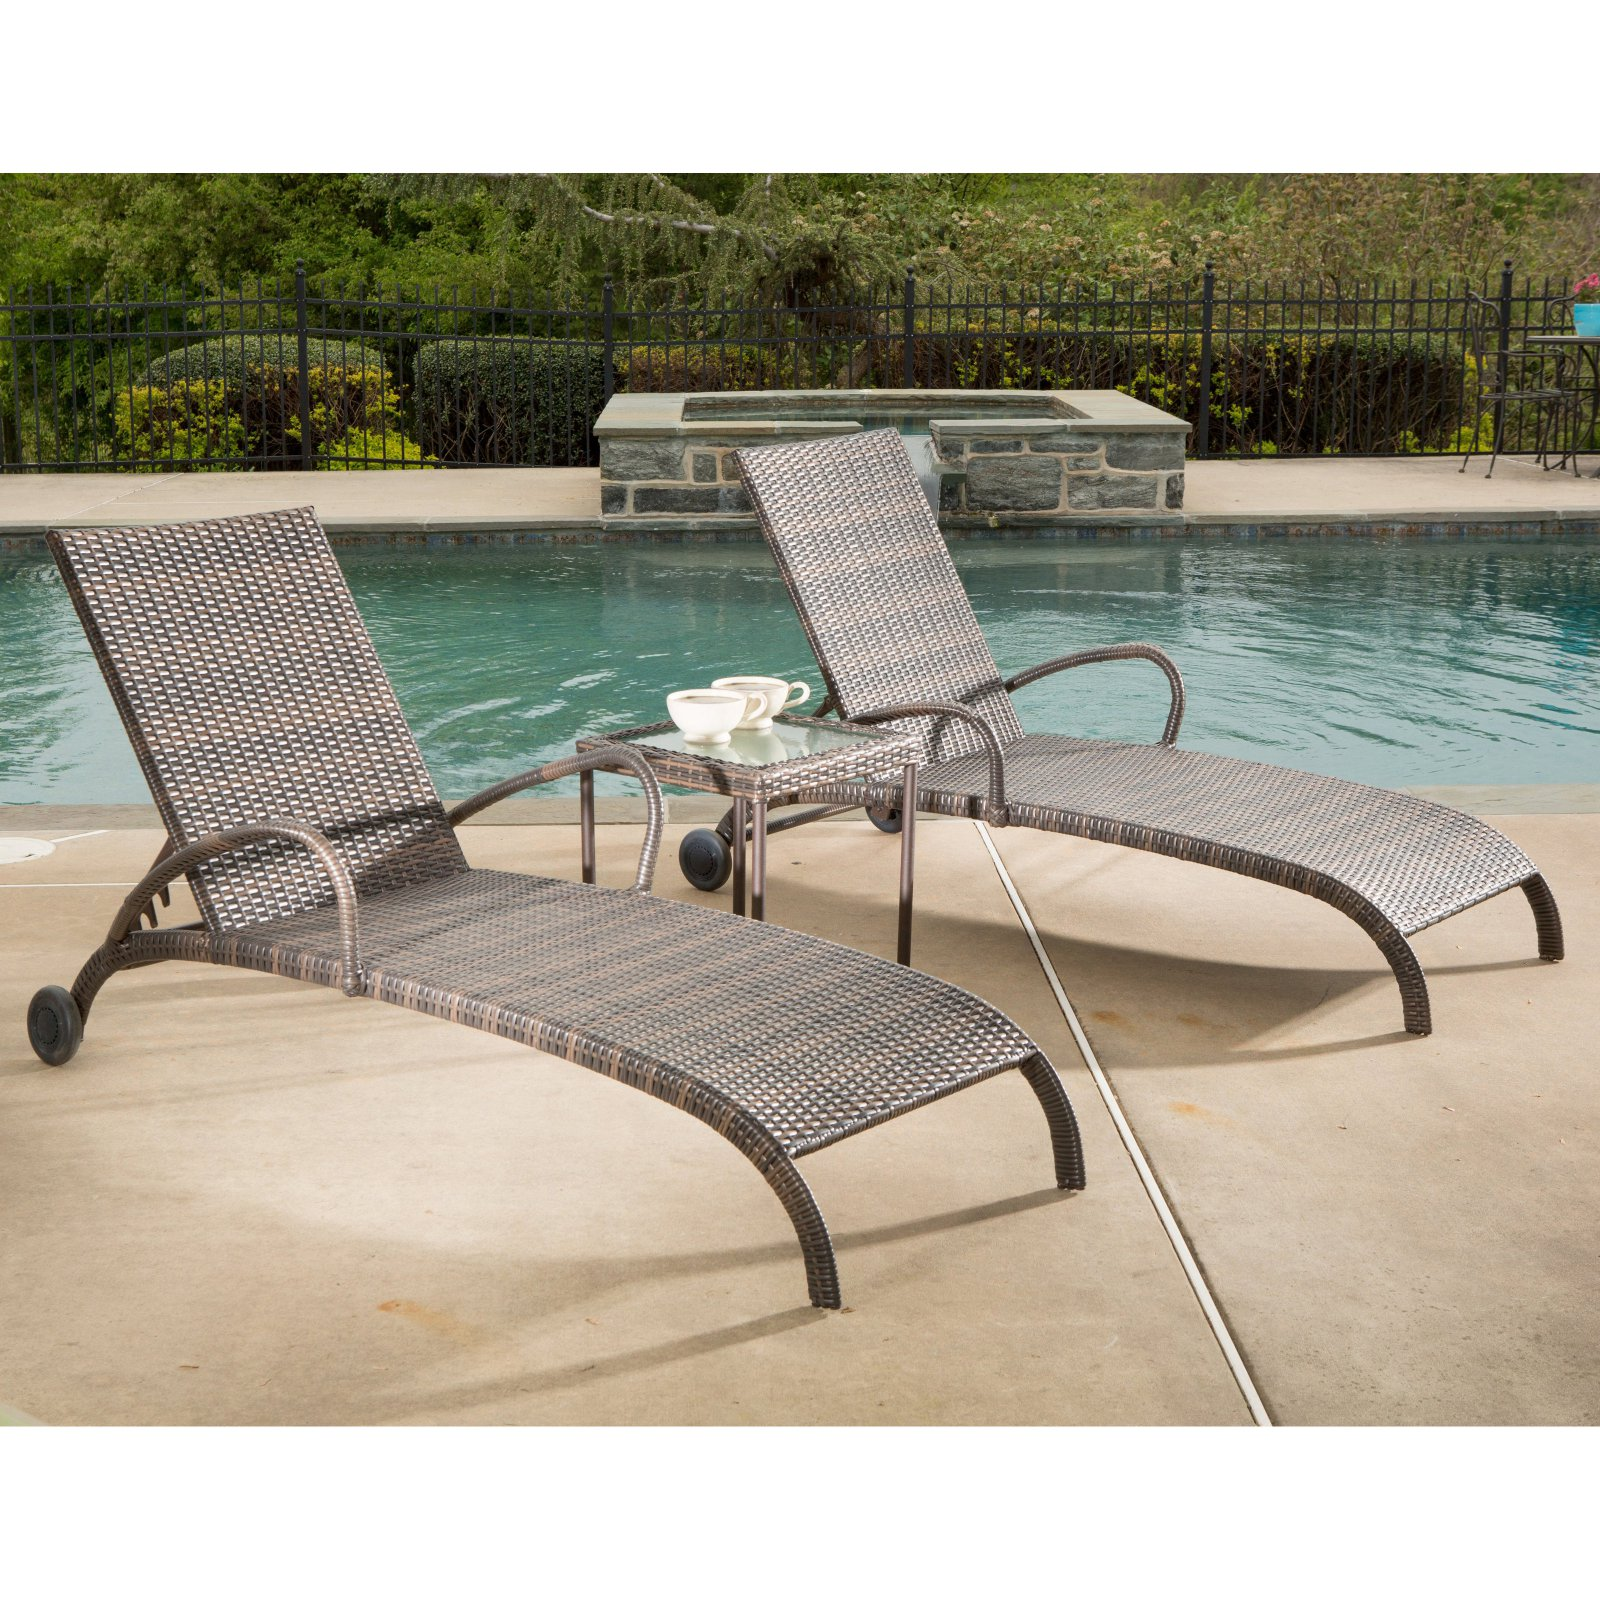 Alfresco Tutto All-Weather Wicker Chaise Lounge Set